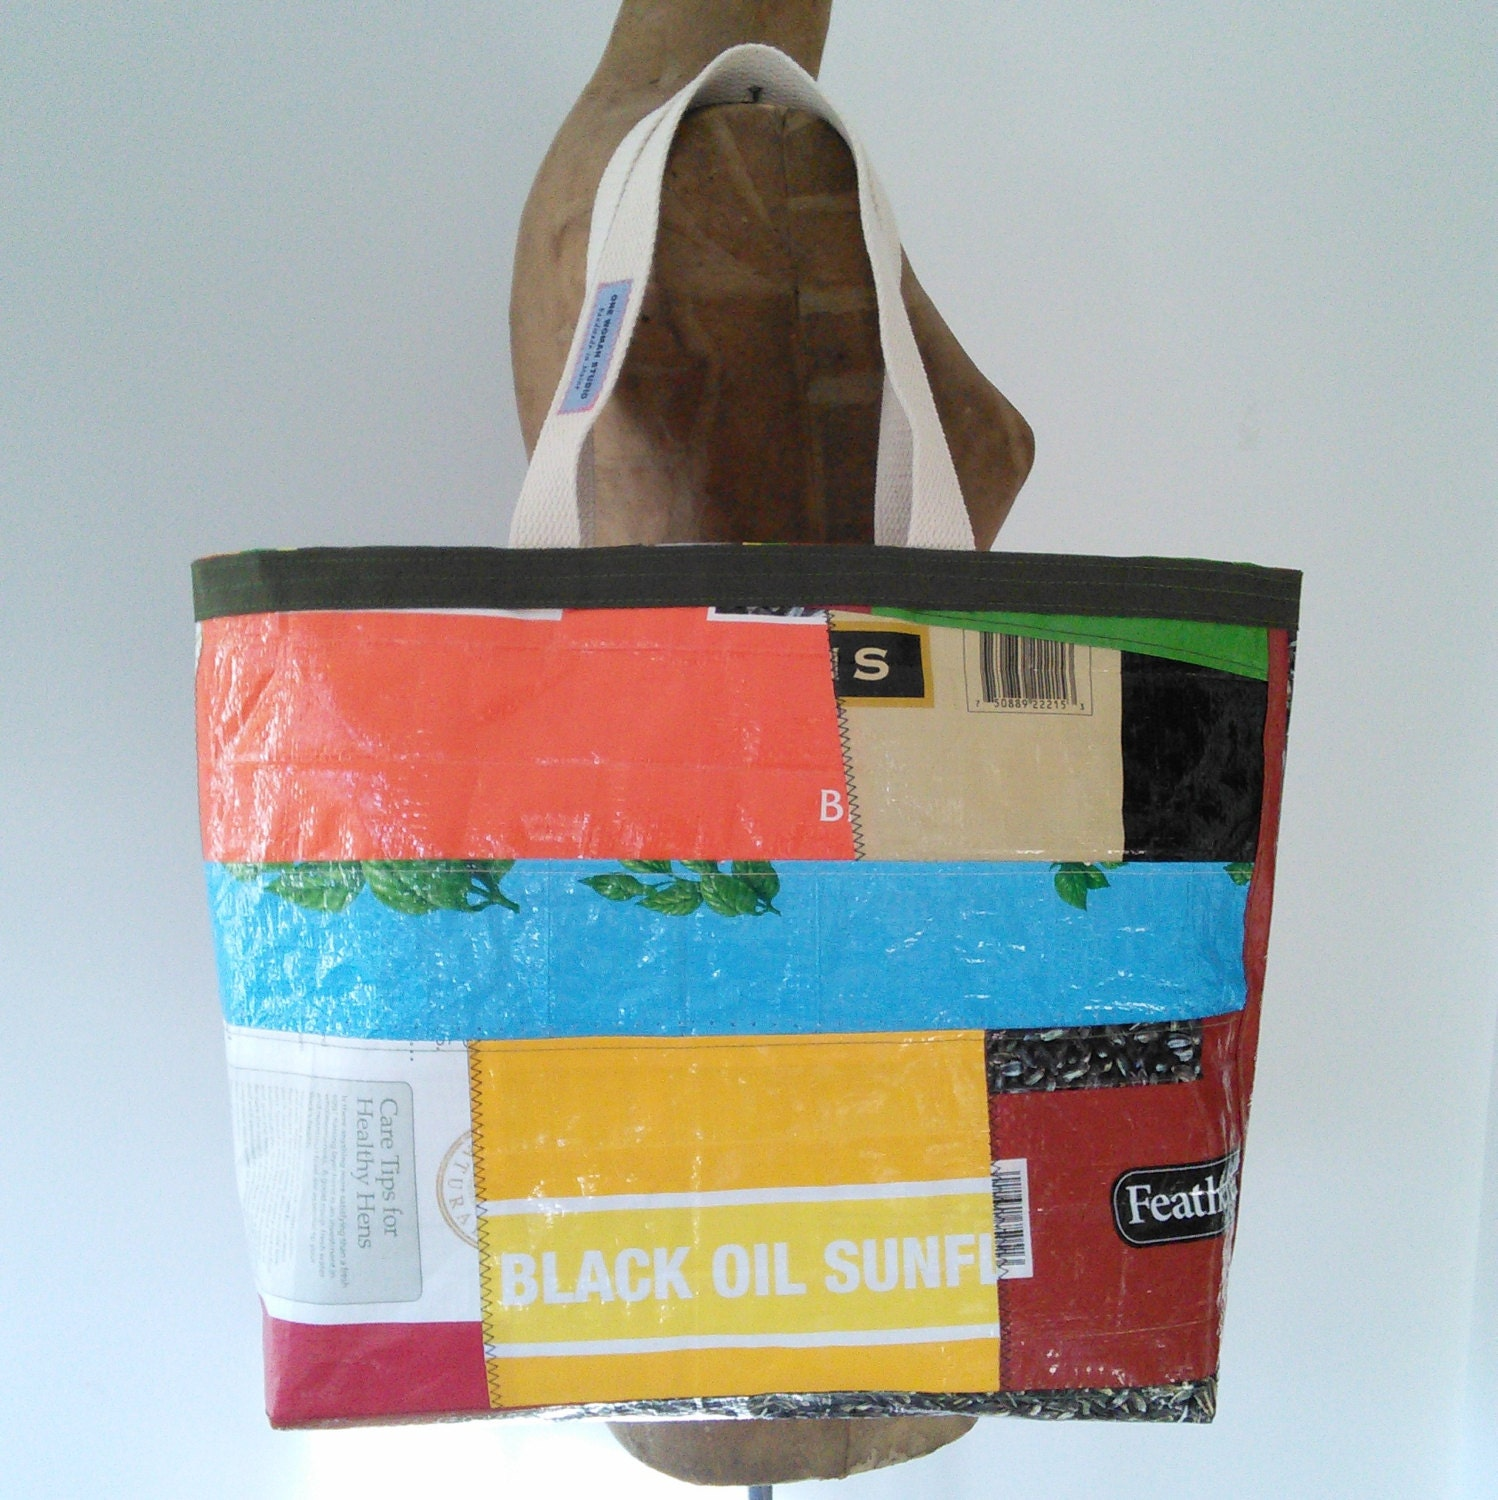 b0a7b5daabeb3d Making Tote Bags For Sale | Stanford Center for Opportunity Policy ...